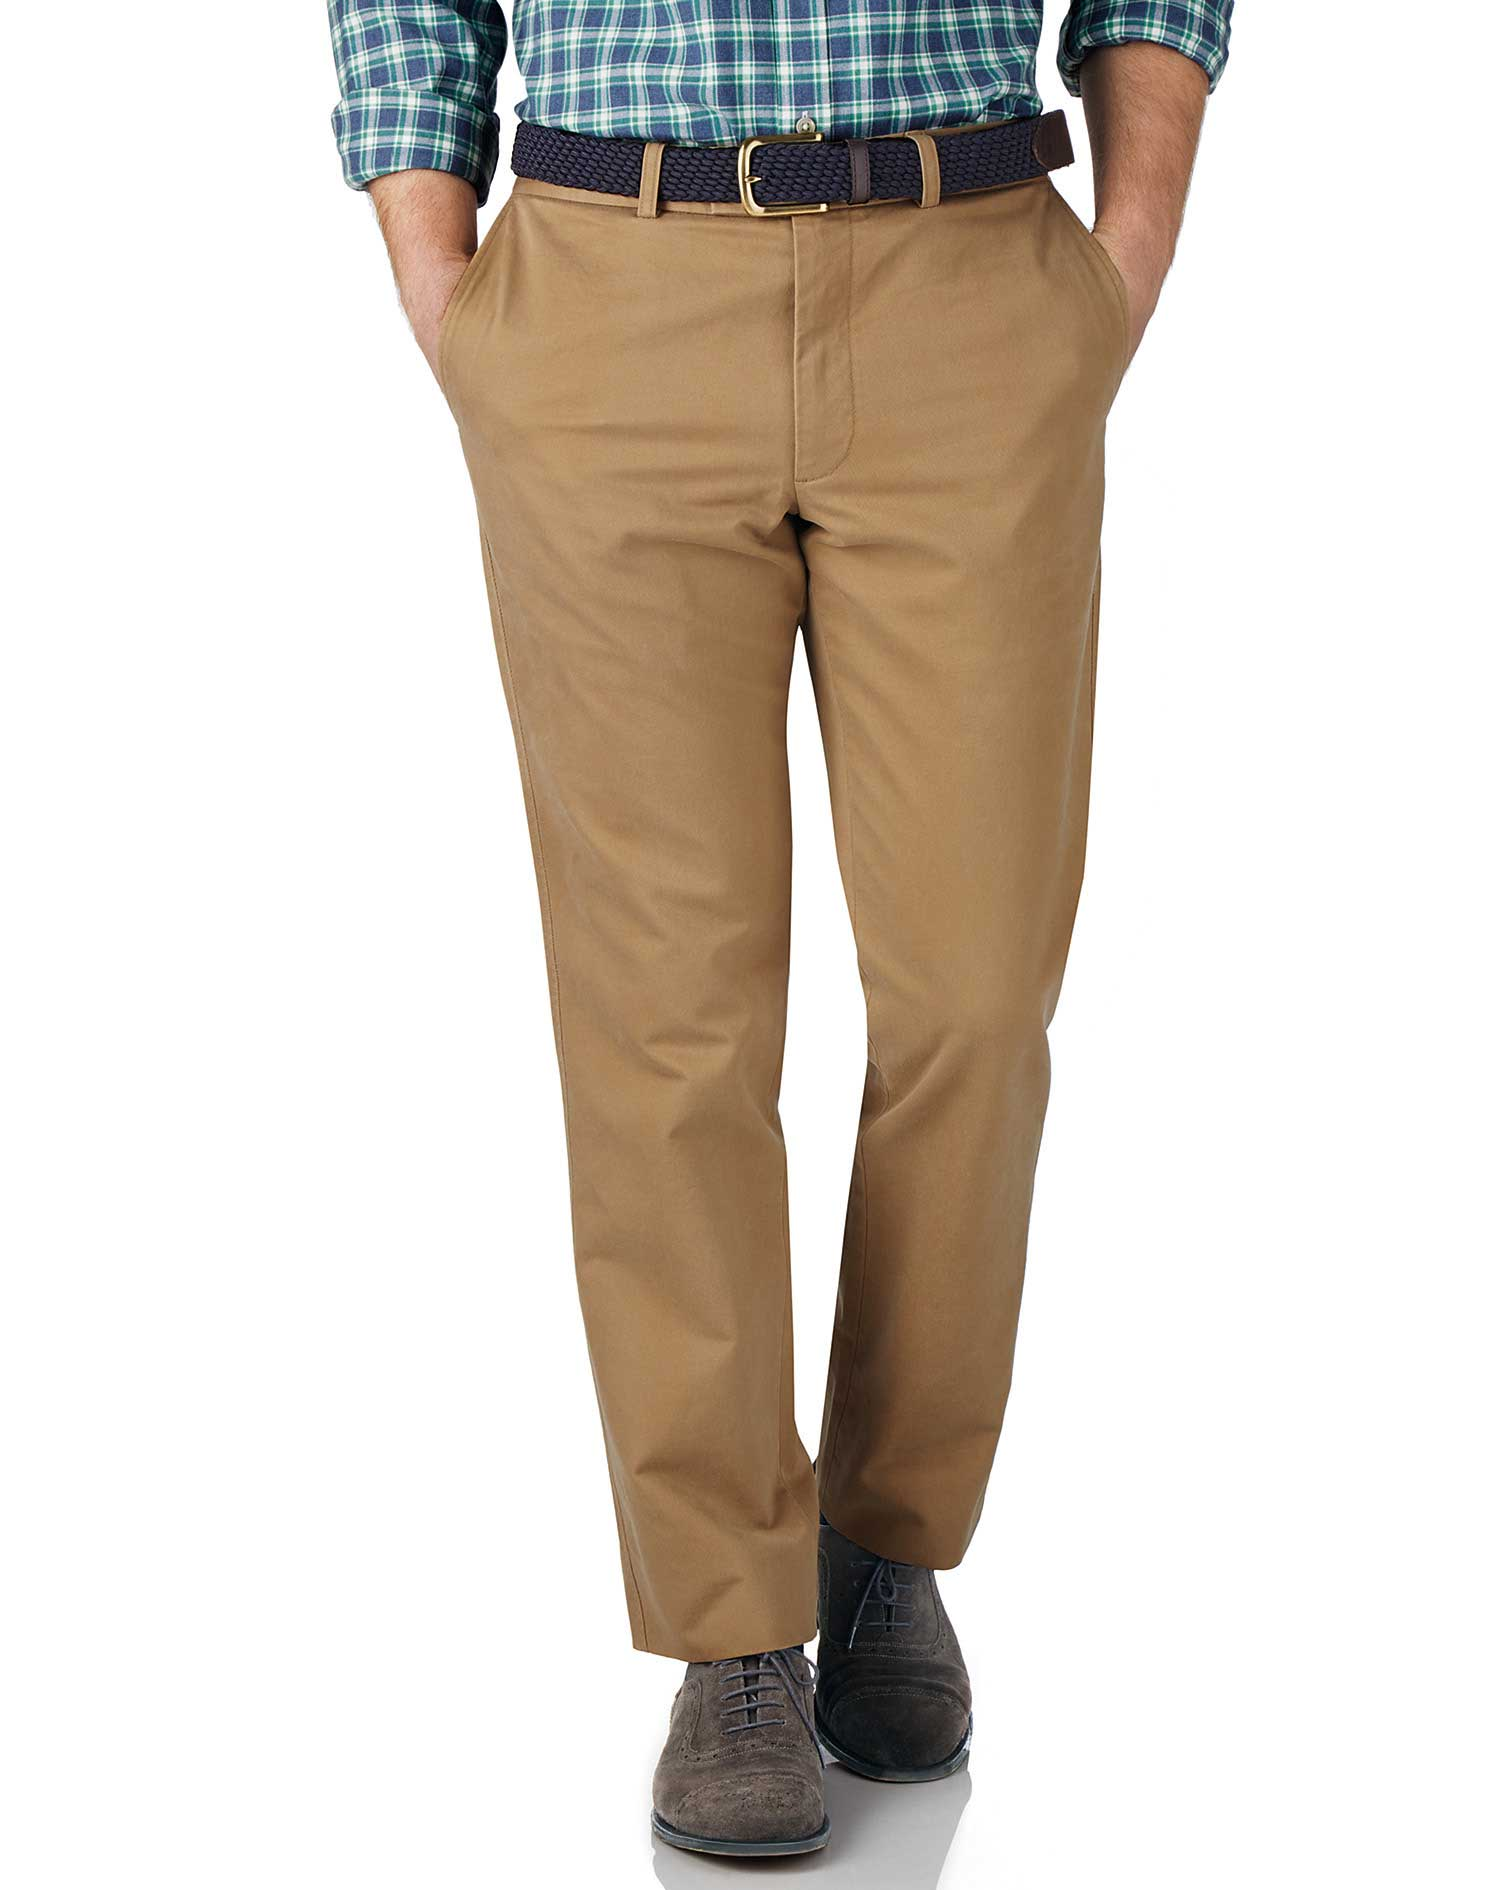 Tan Slim Fit Flat Front Weekend Cotton Chino Trousers Size W40 L30 by Charles Tyrwhitt